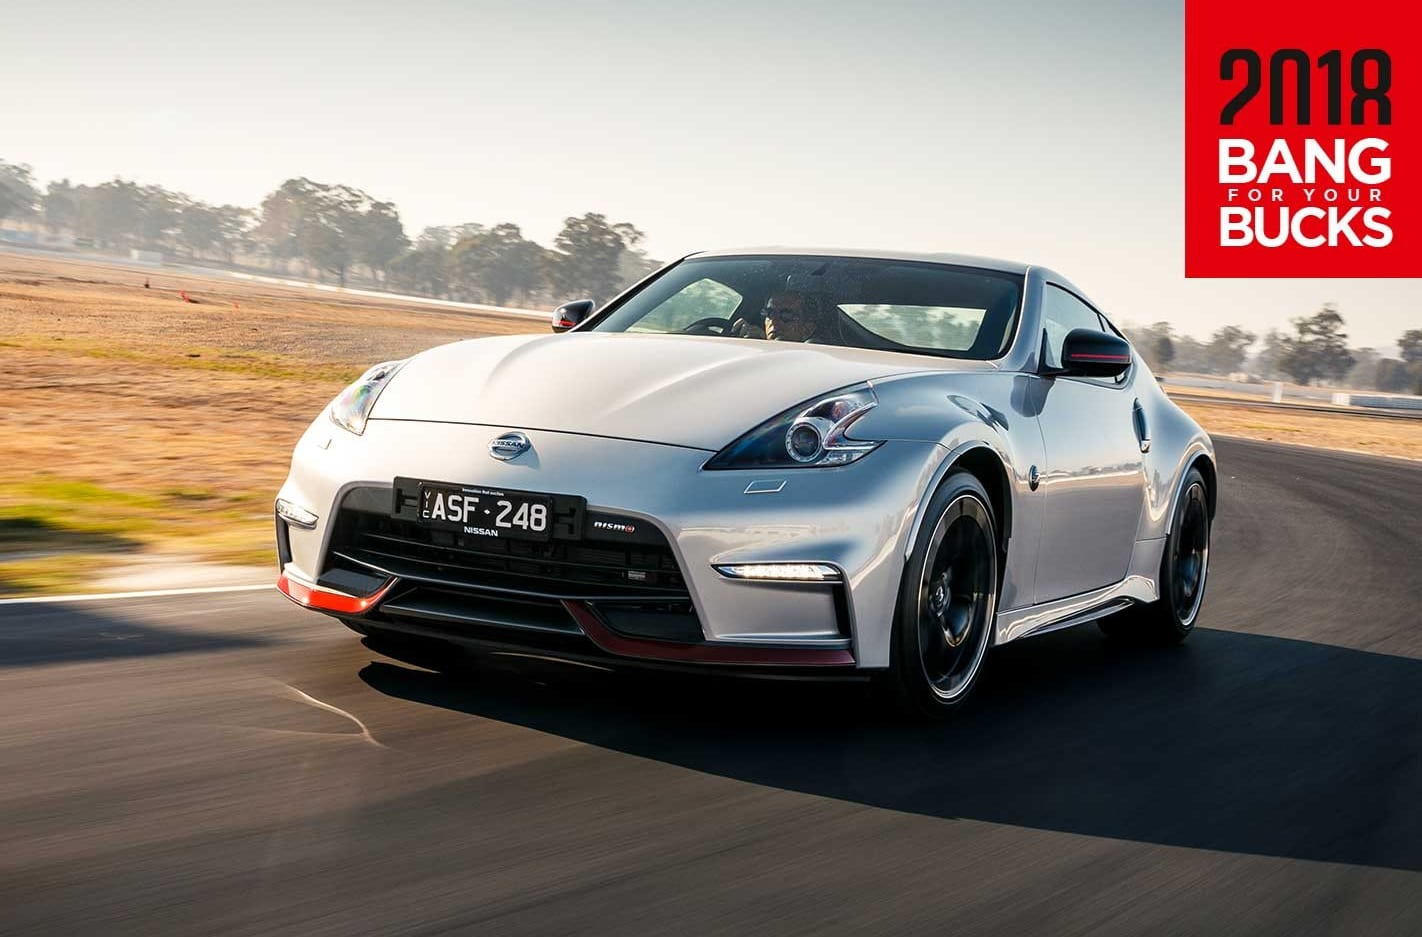 2018 Nissan 370Z Nismo track review